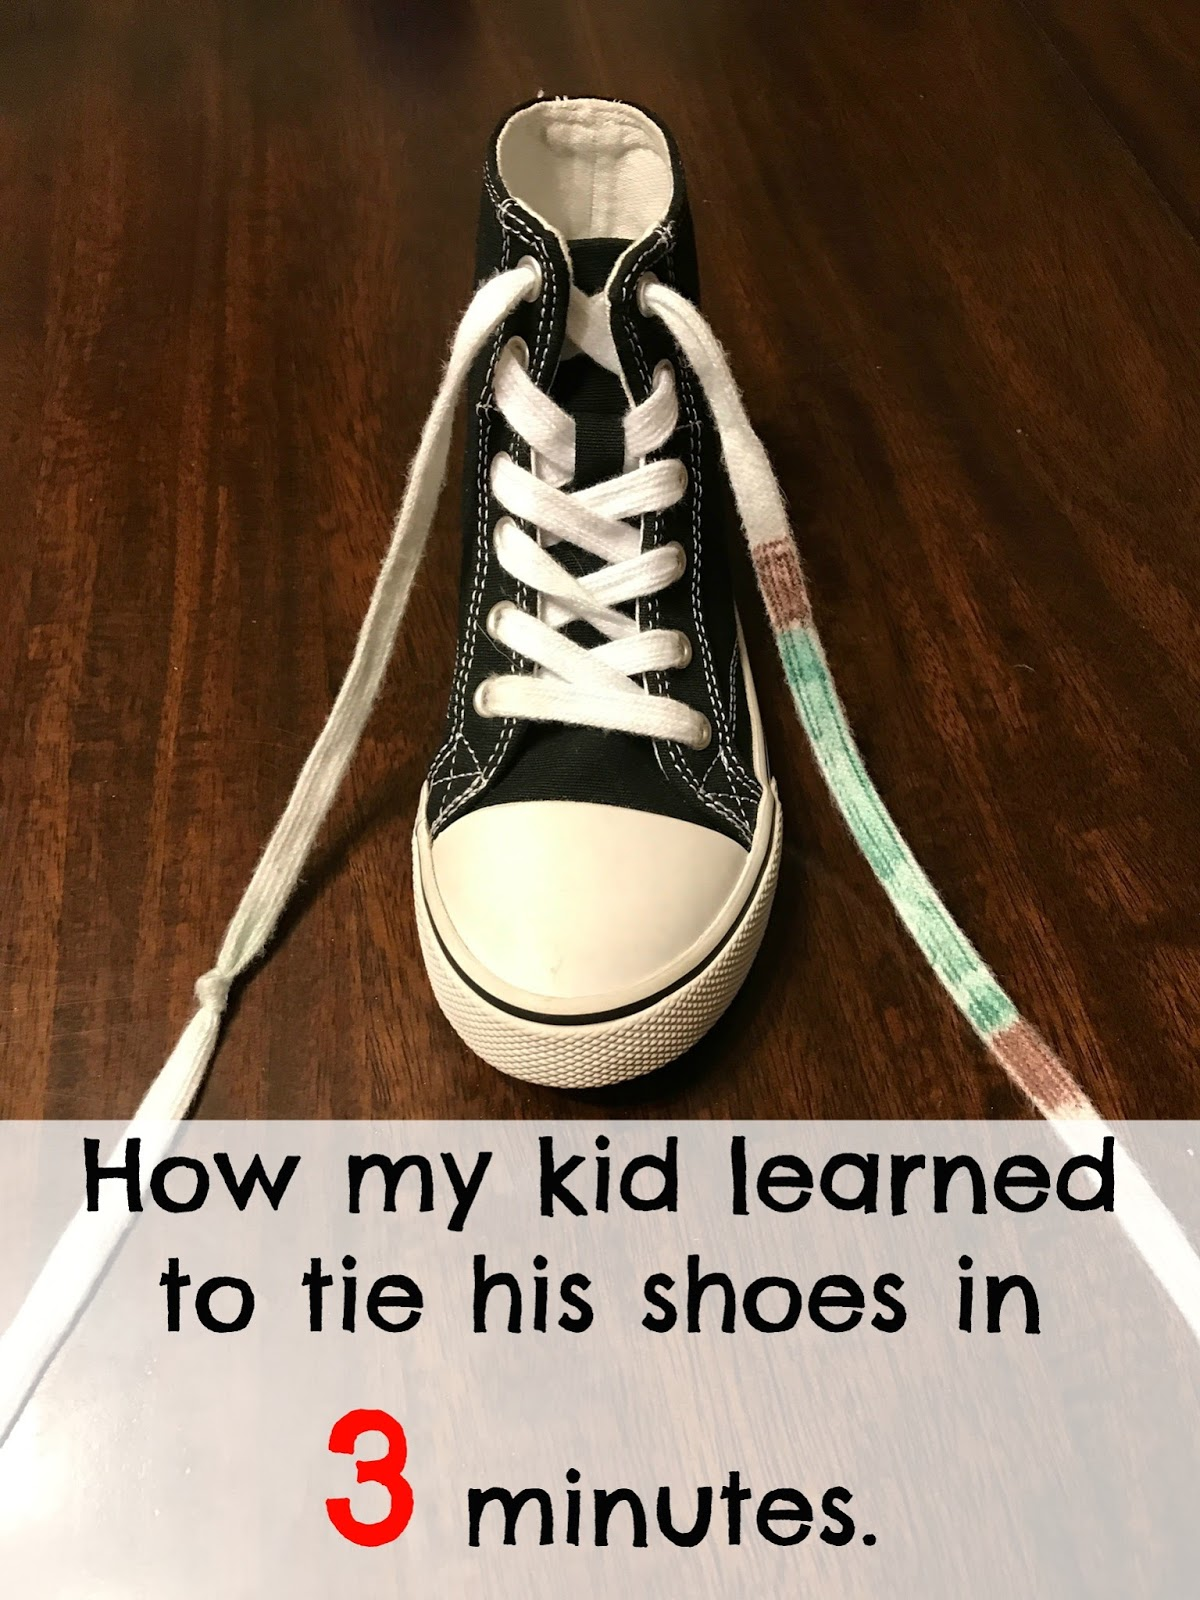 How Do You Teach A Kid To Tie Their Shoes